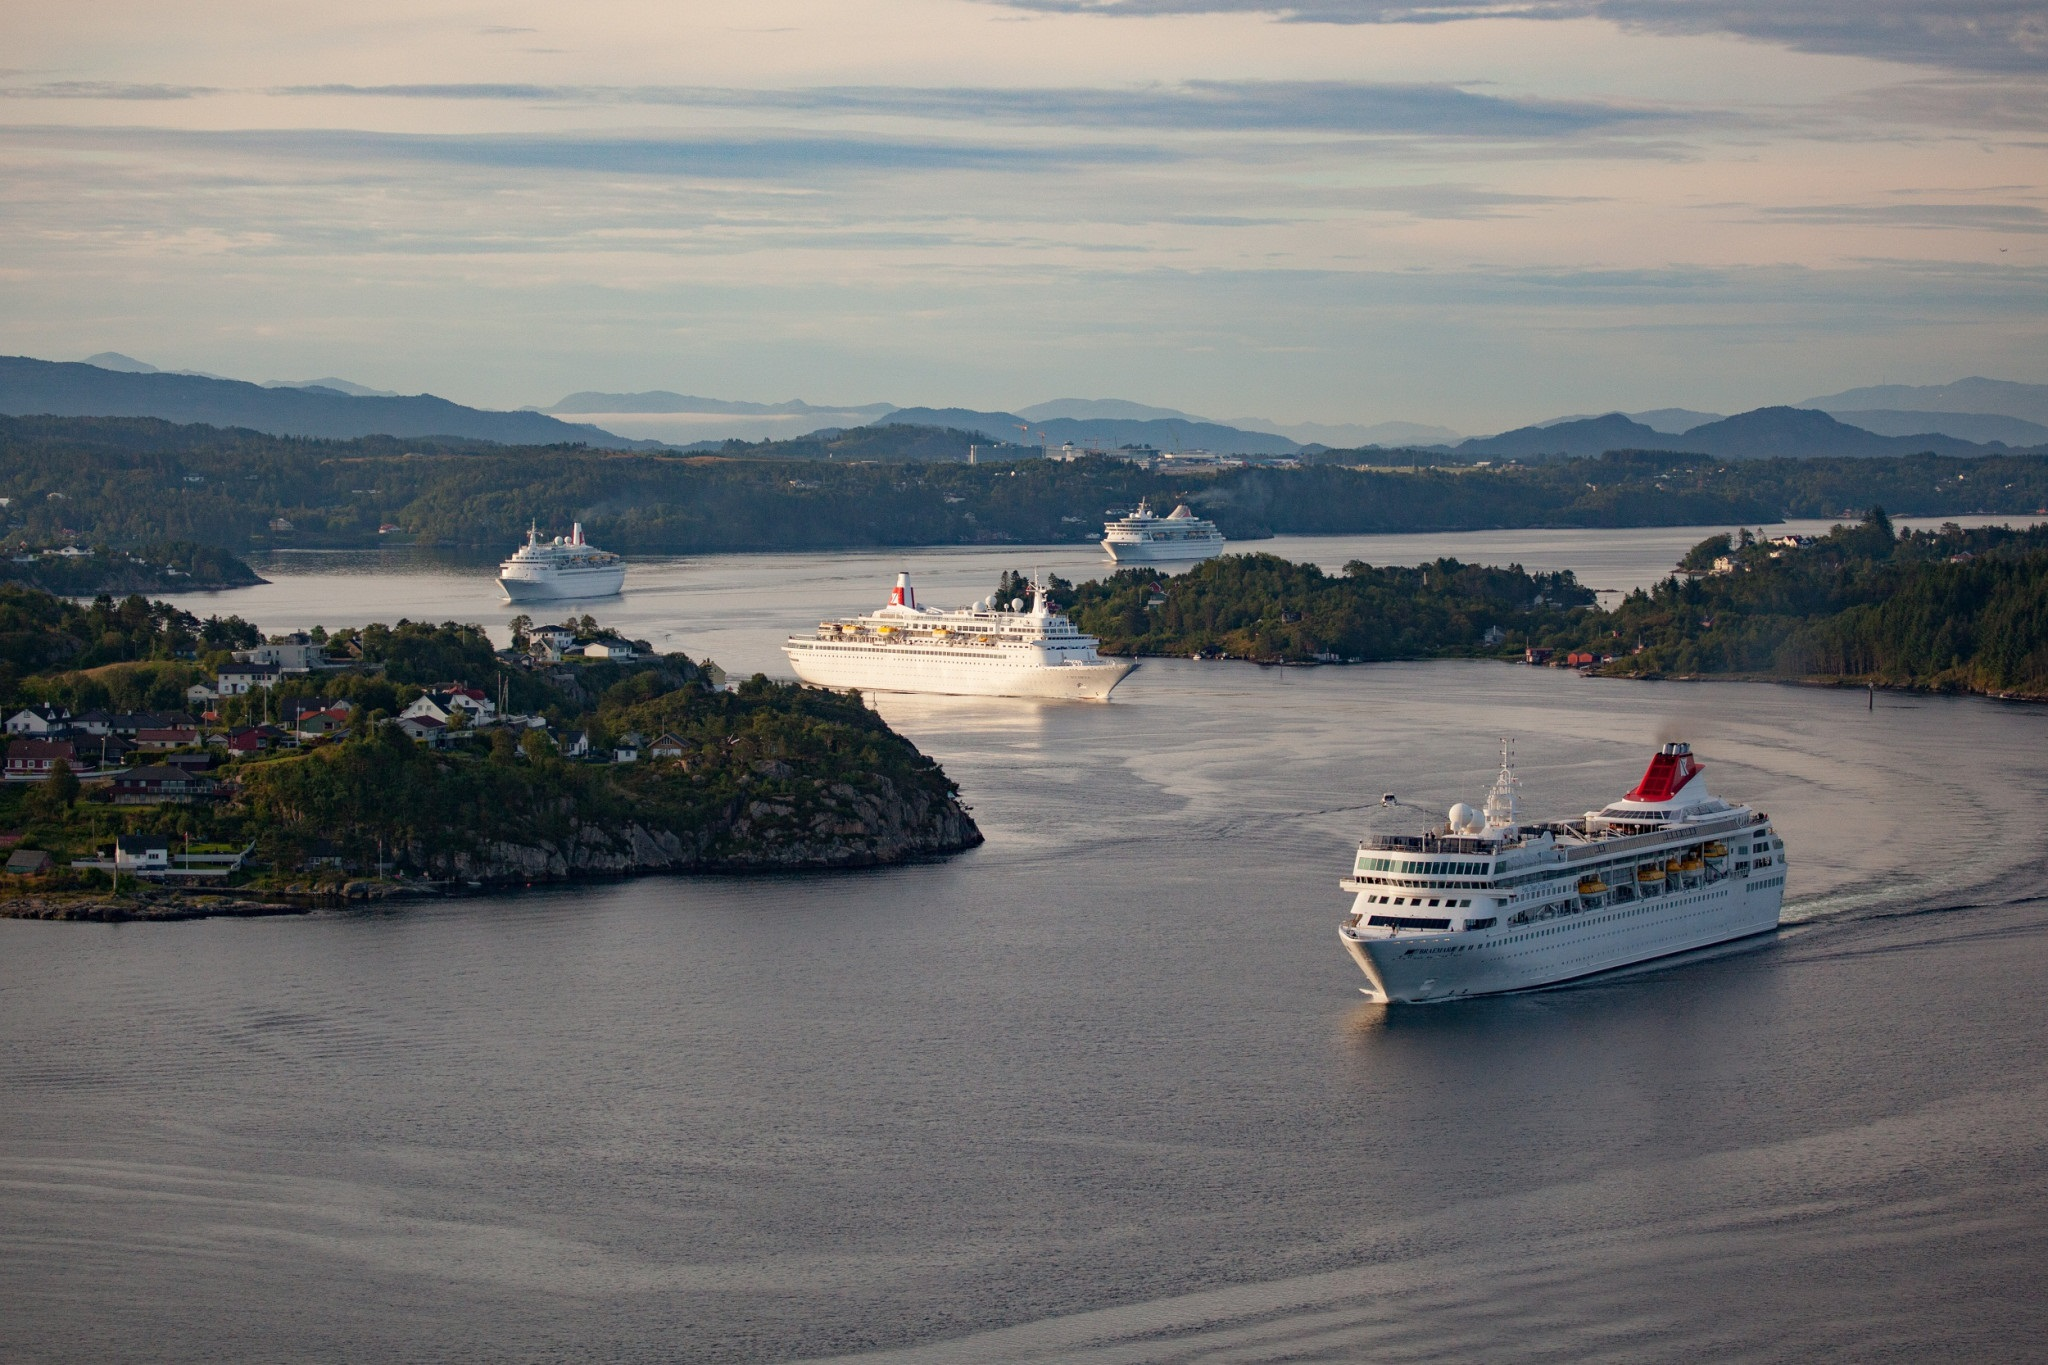 The Balmoral, Braemar, Boudicca and Black Watch pictured here, will all be together once again in the Forth later this week.